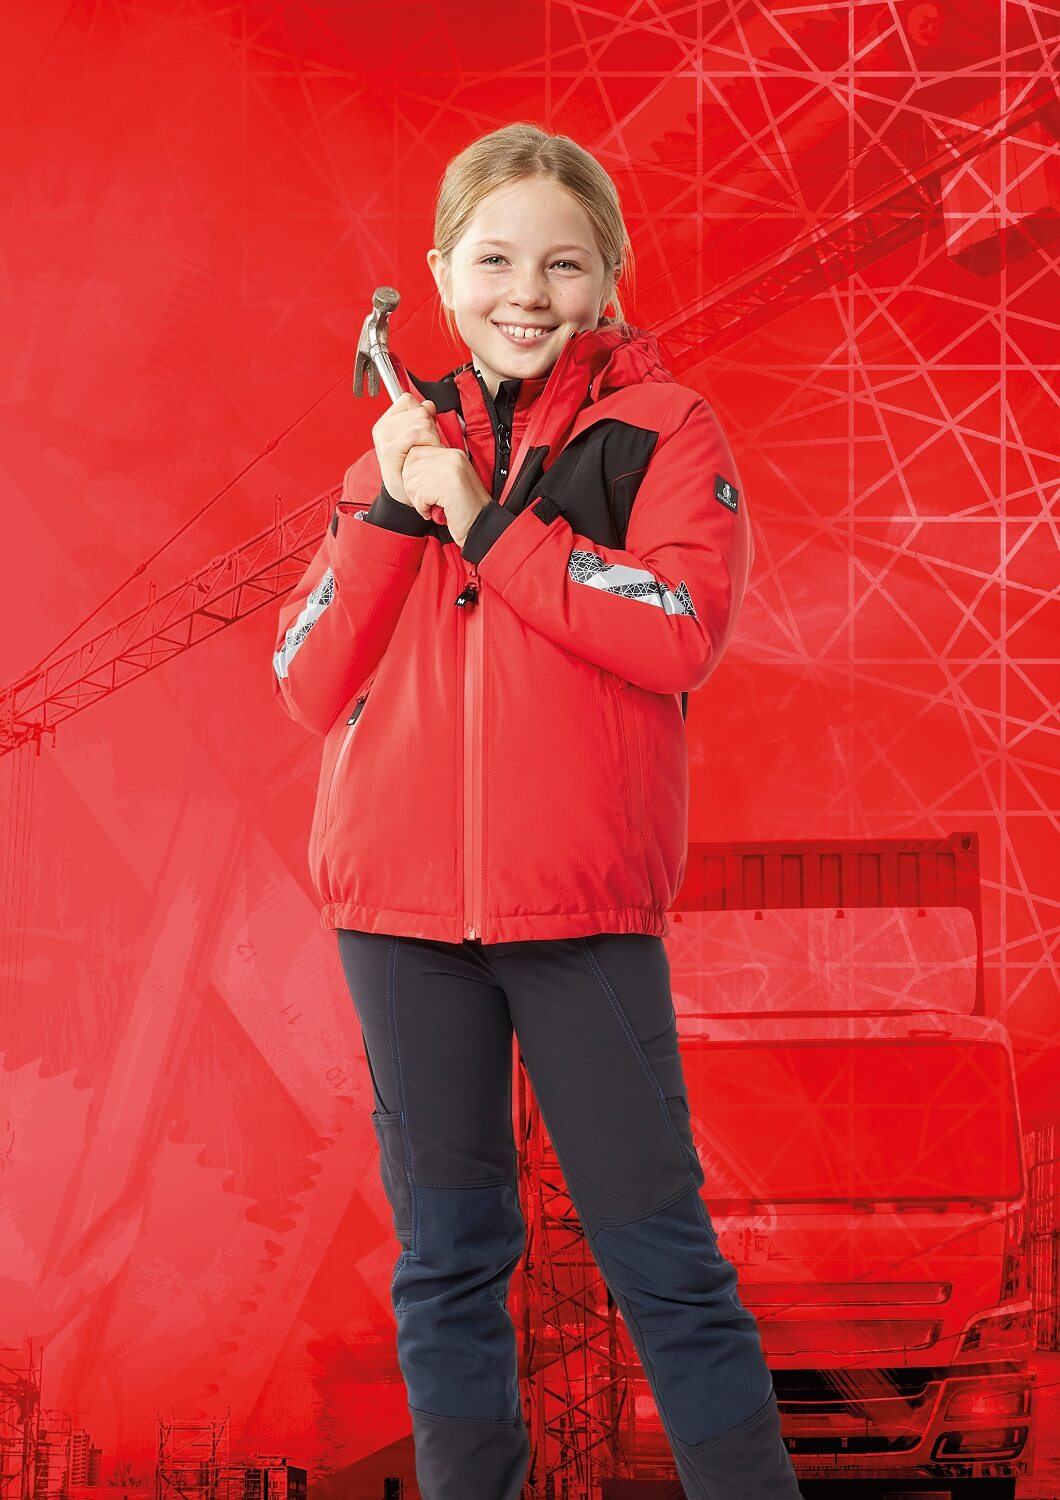 Jacket for children & Trousers - Red & Black - MASCOT® ACCELERATE